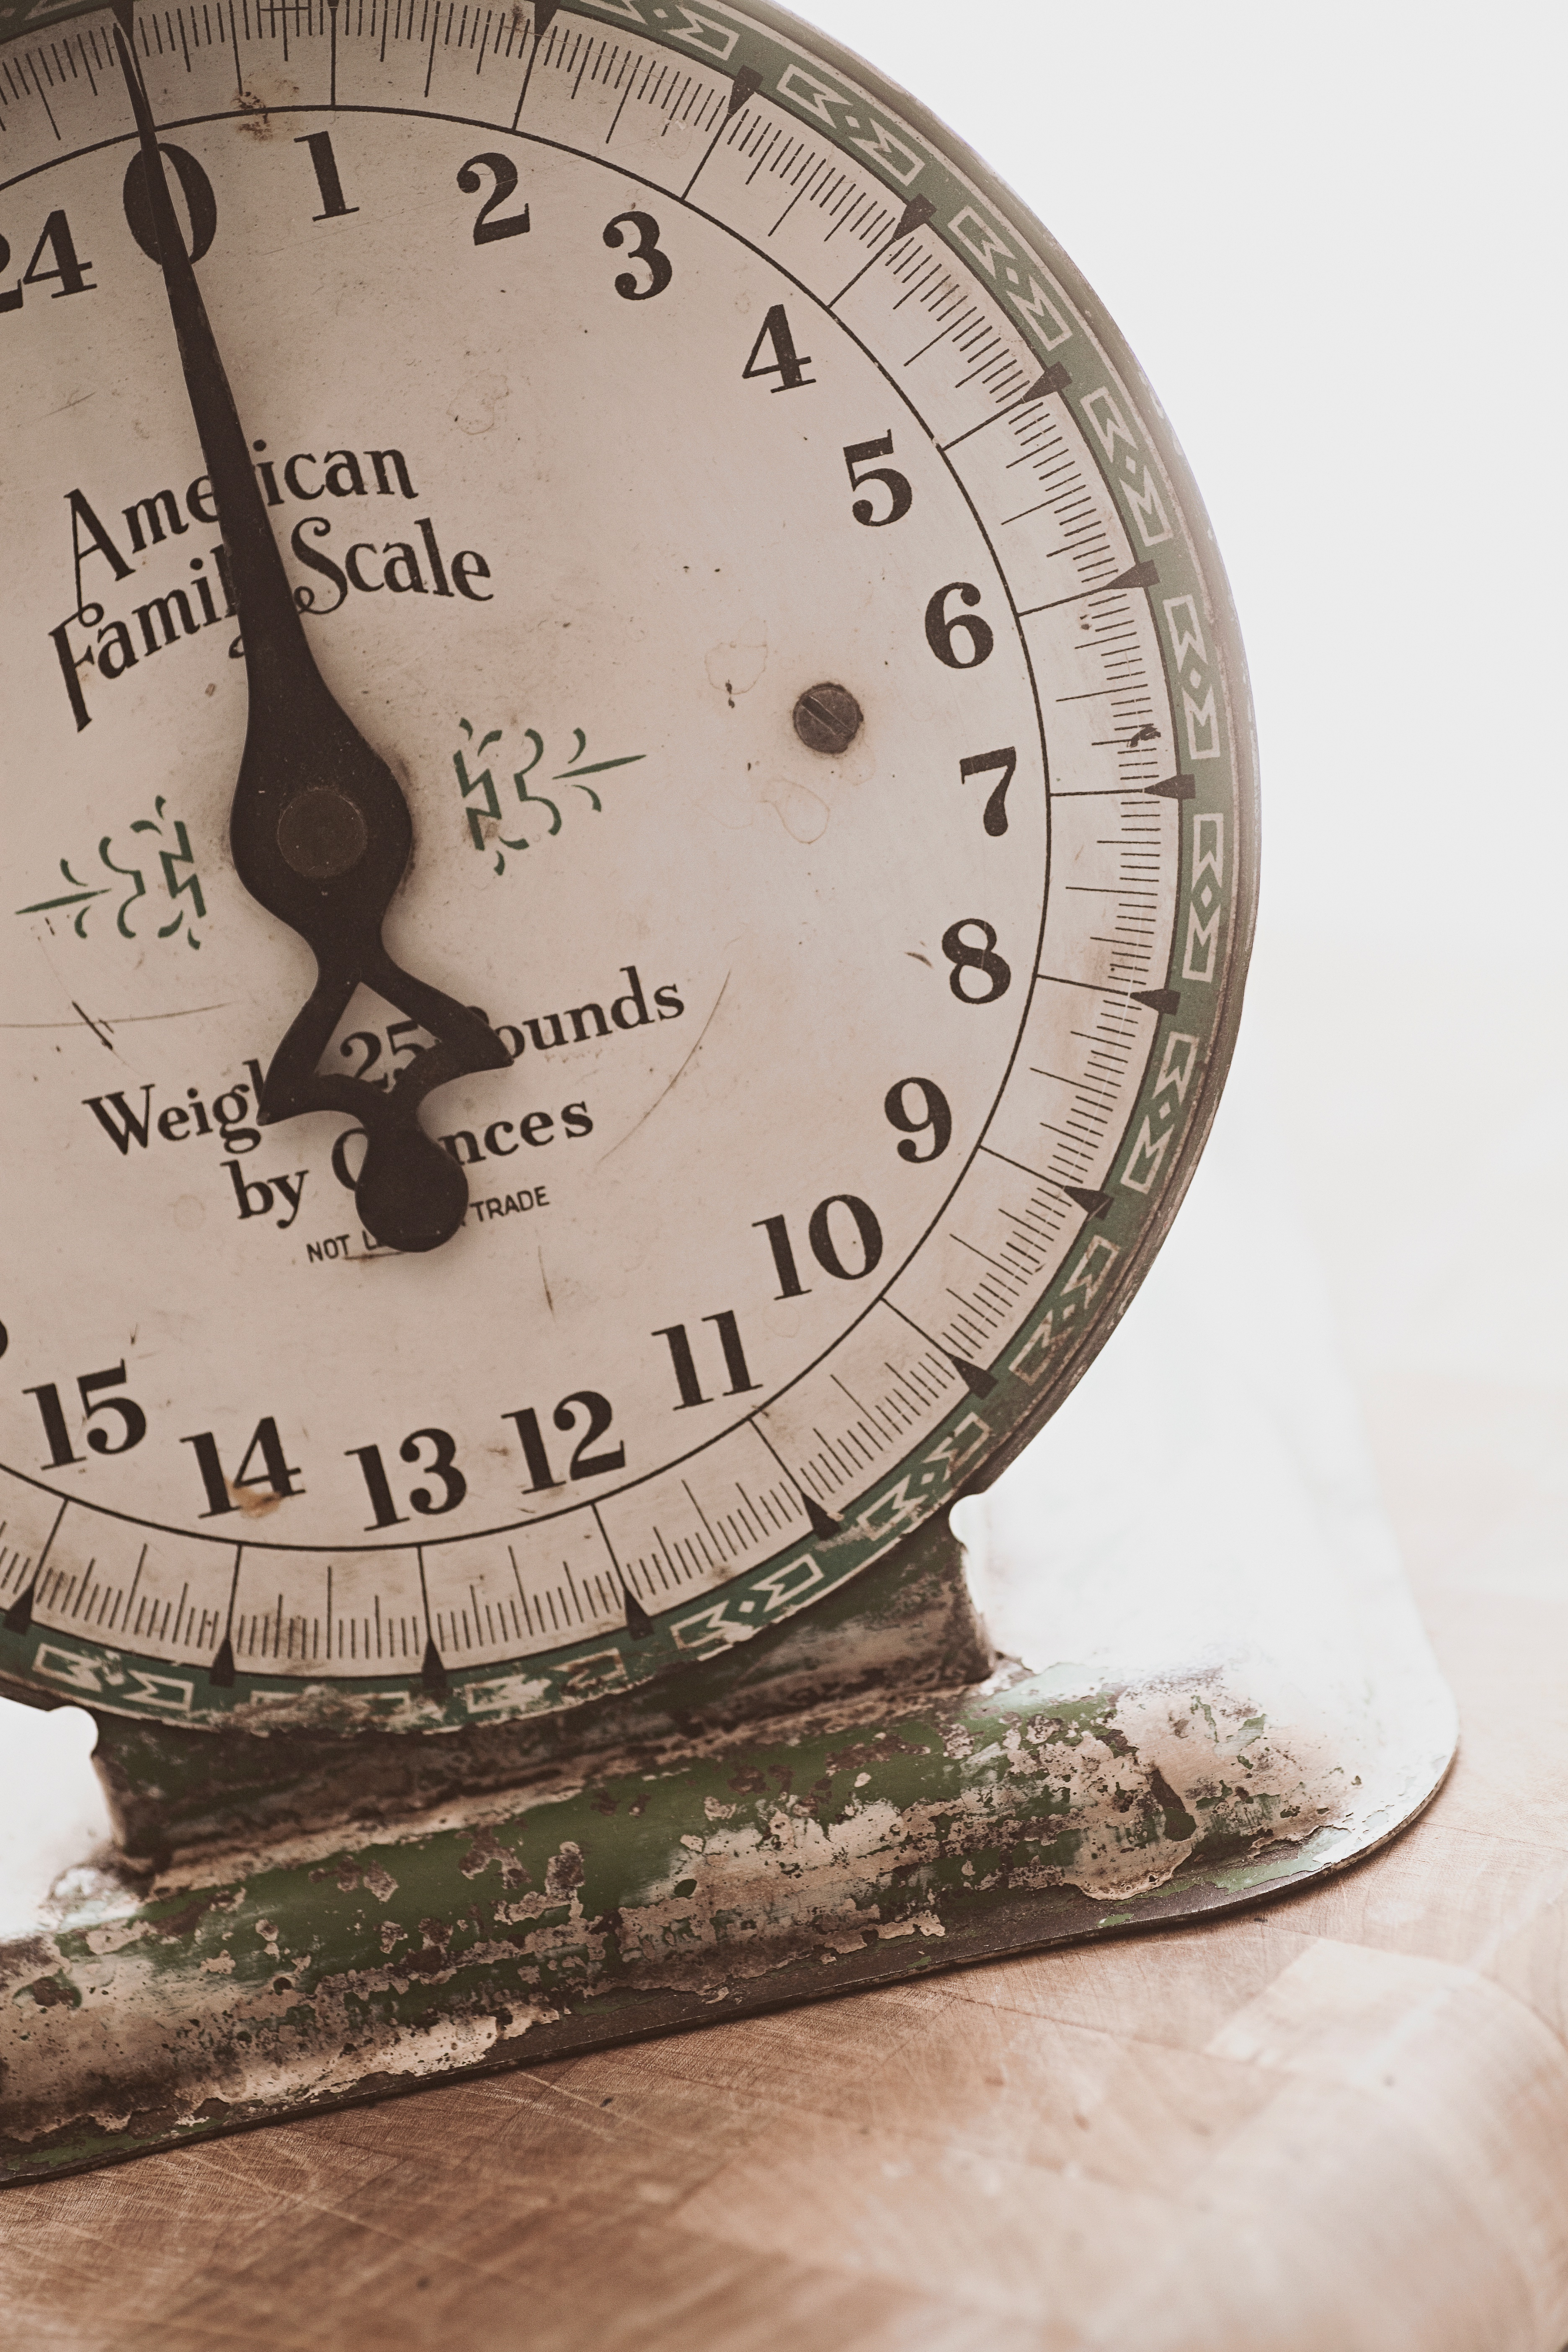 Guidion's happiness barometer